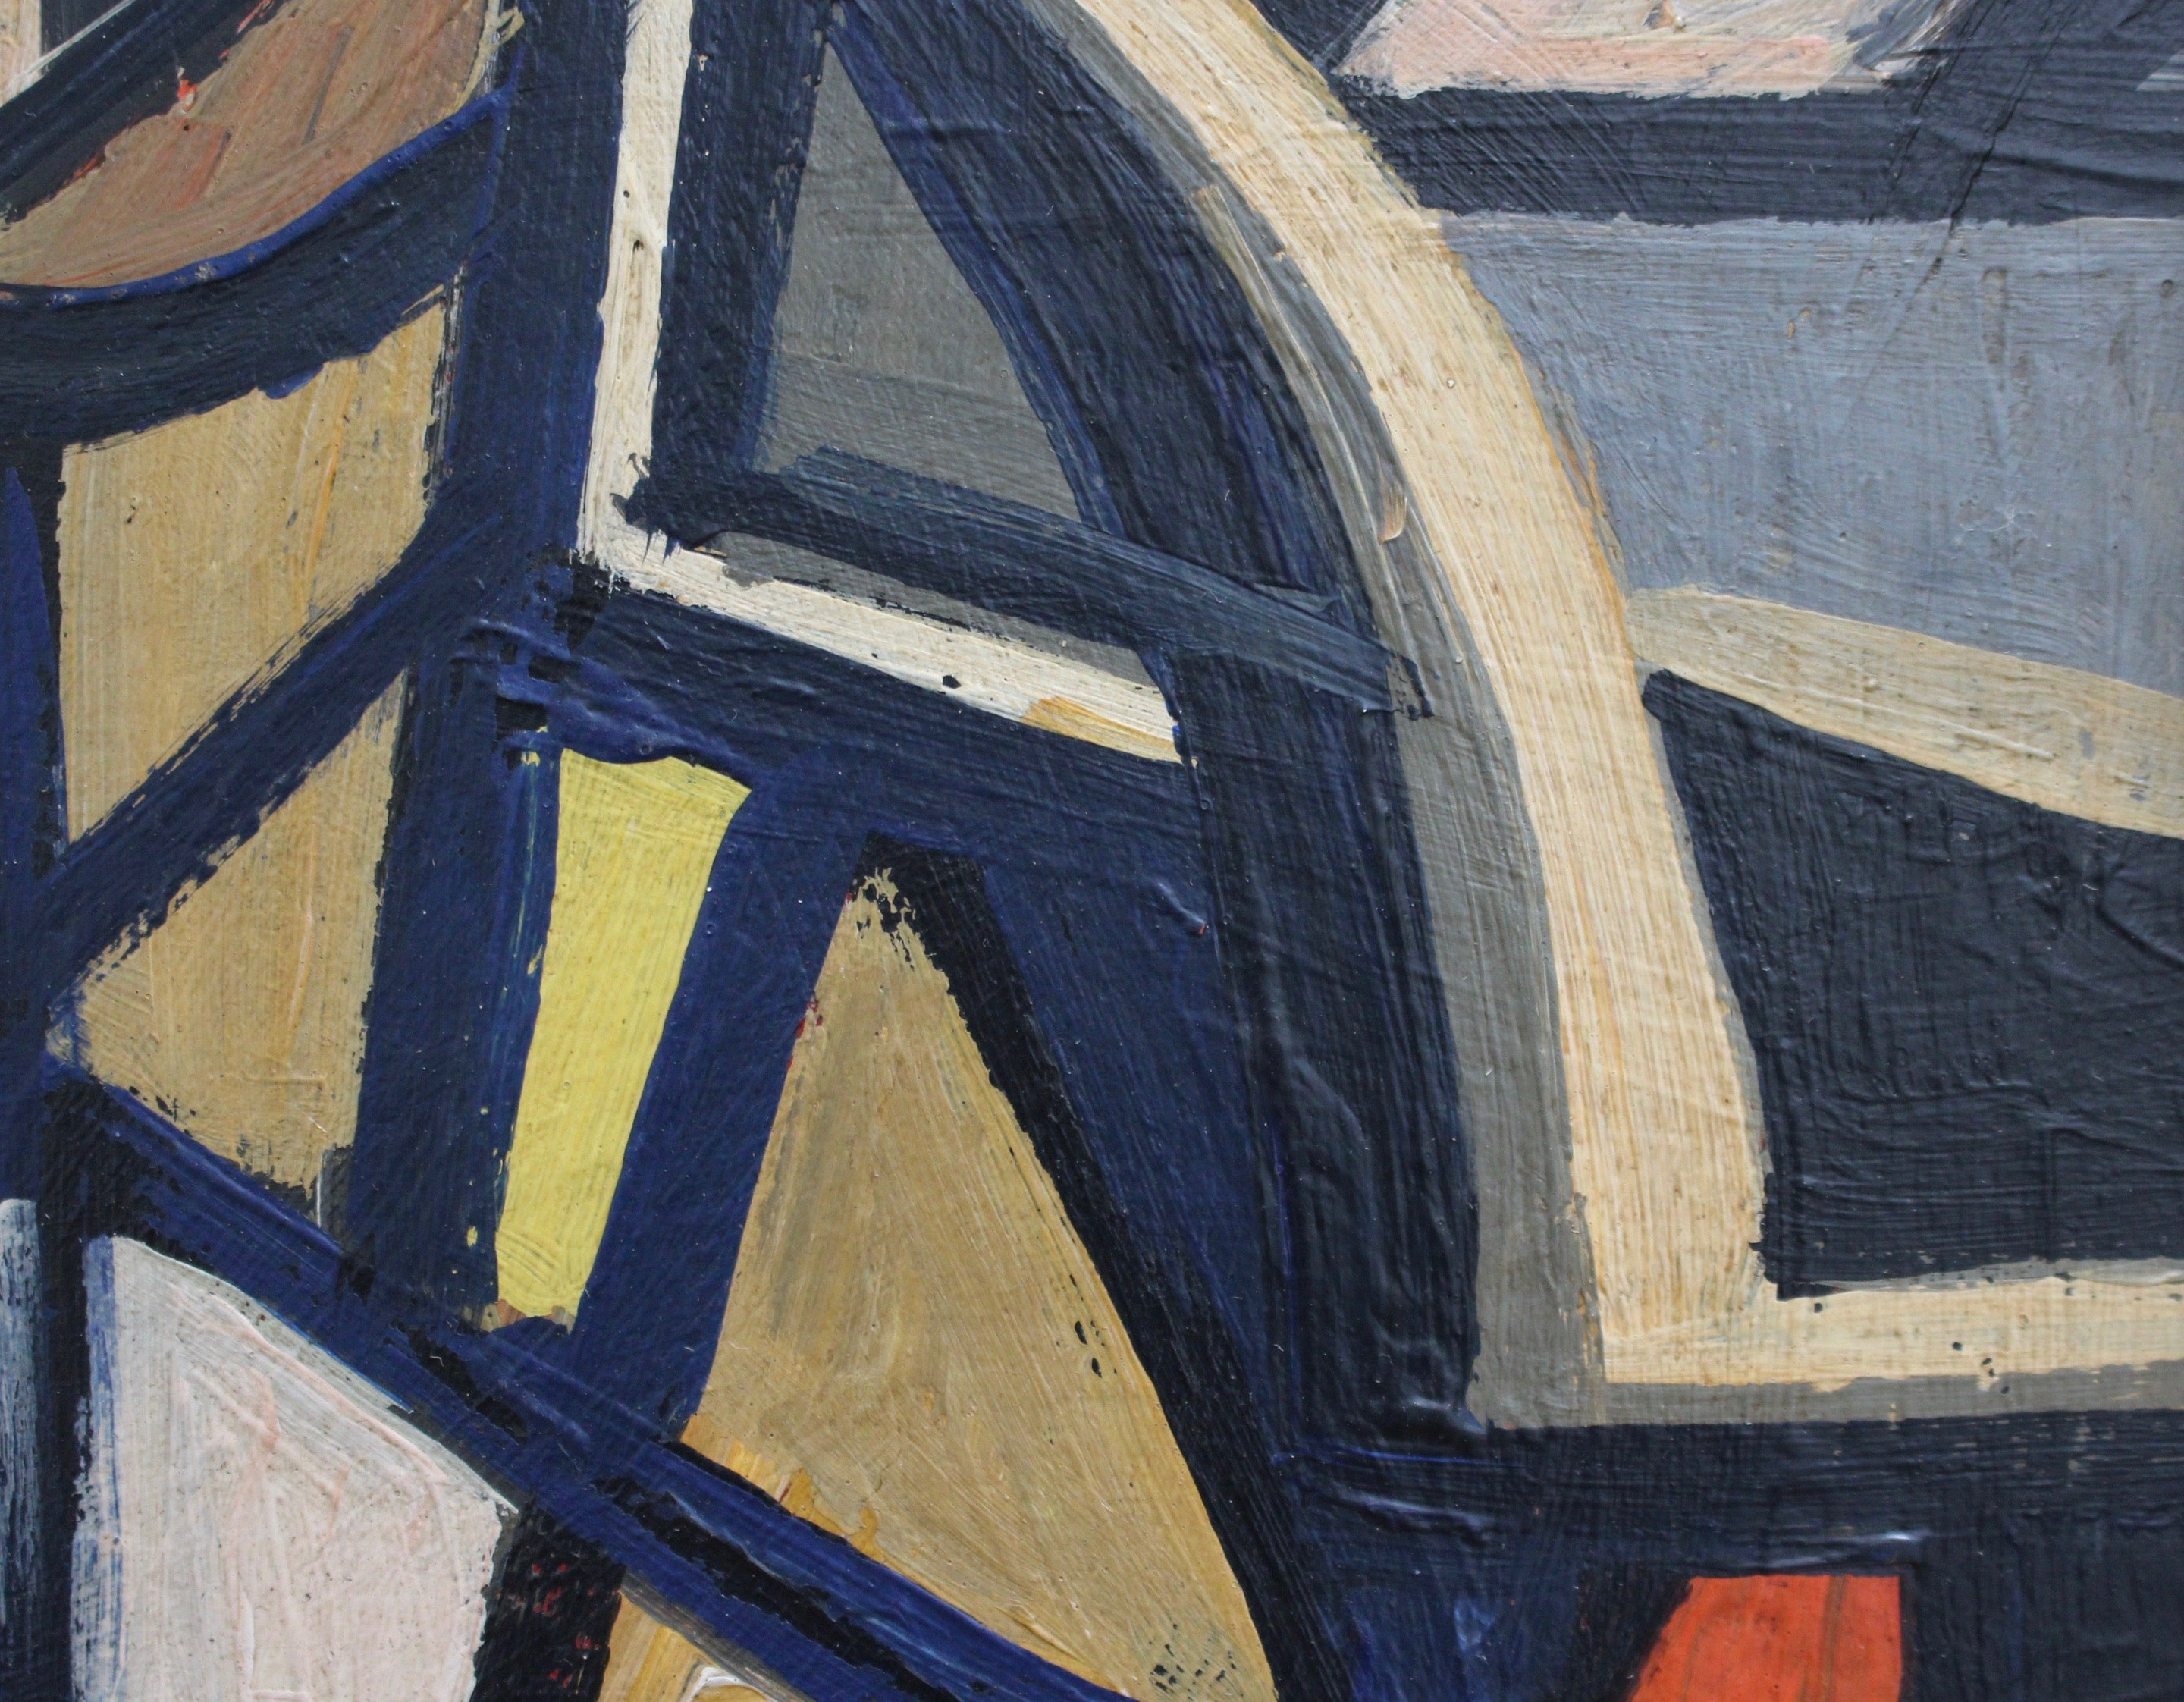 'Cubist Abstraction' by STM (circa 1950s-70s)